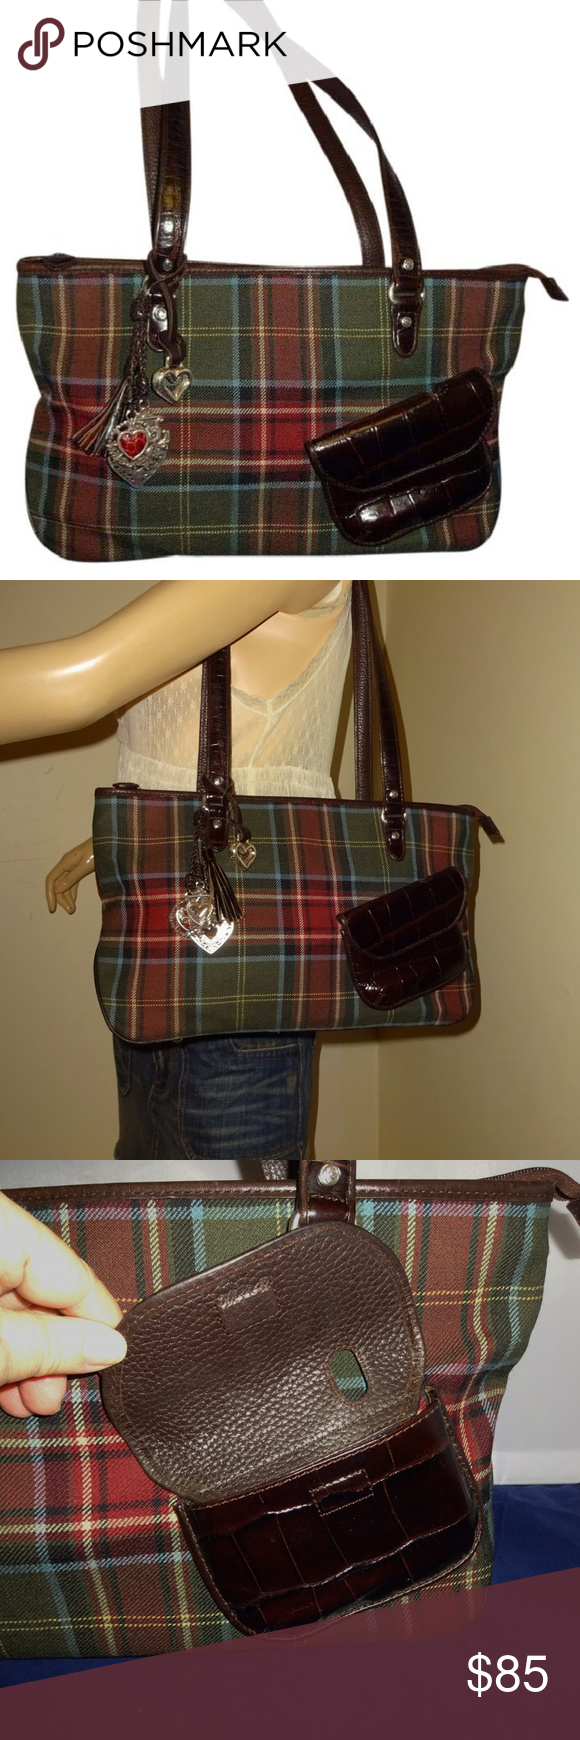 Brighton Large TARTAN Plaid Zip Top McKENNA Tote This large